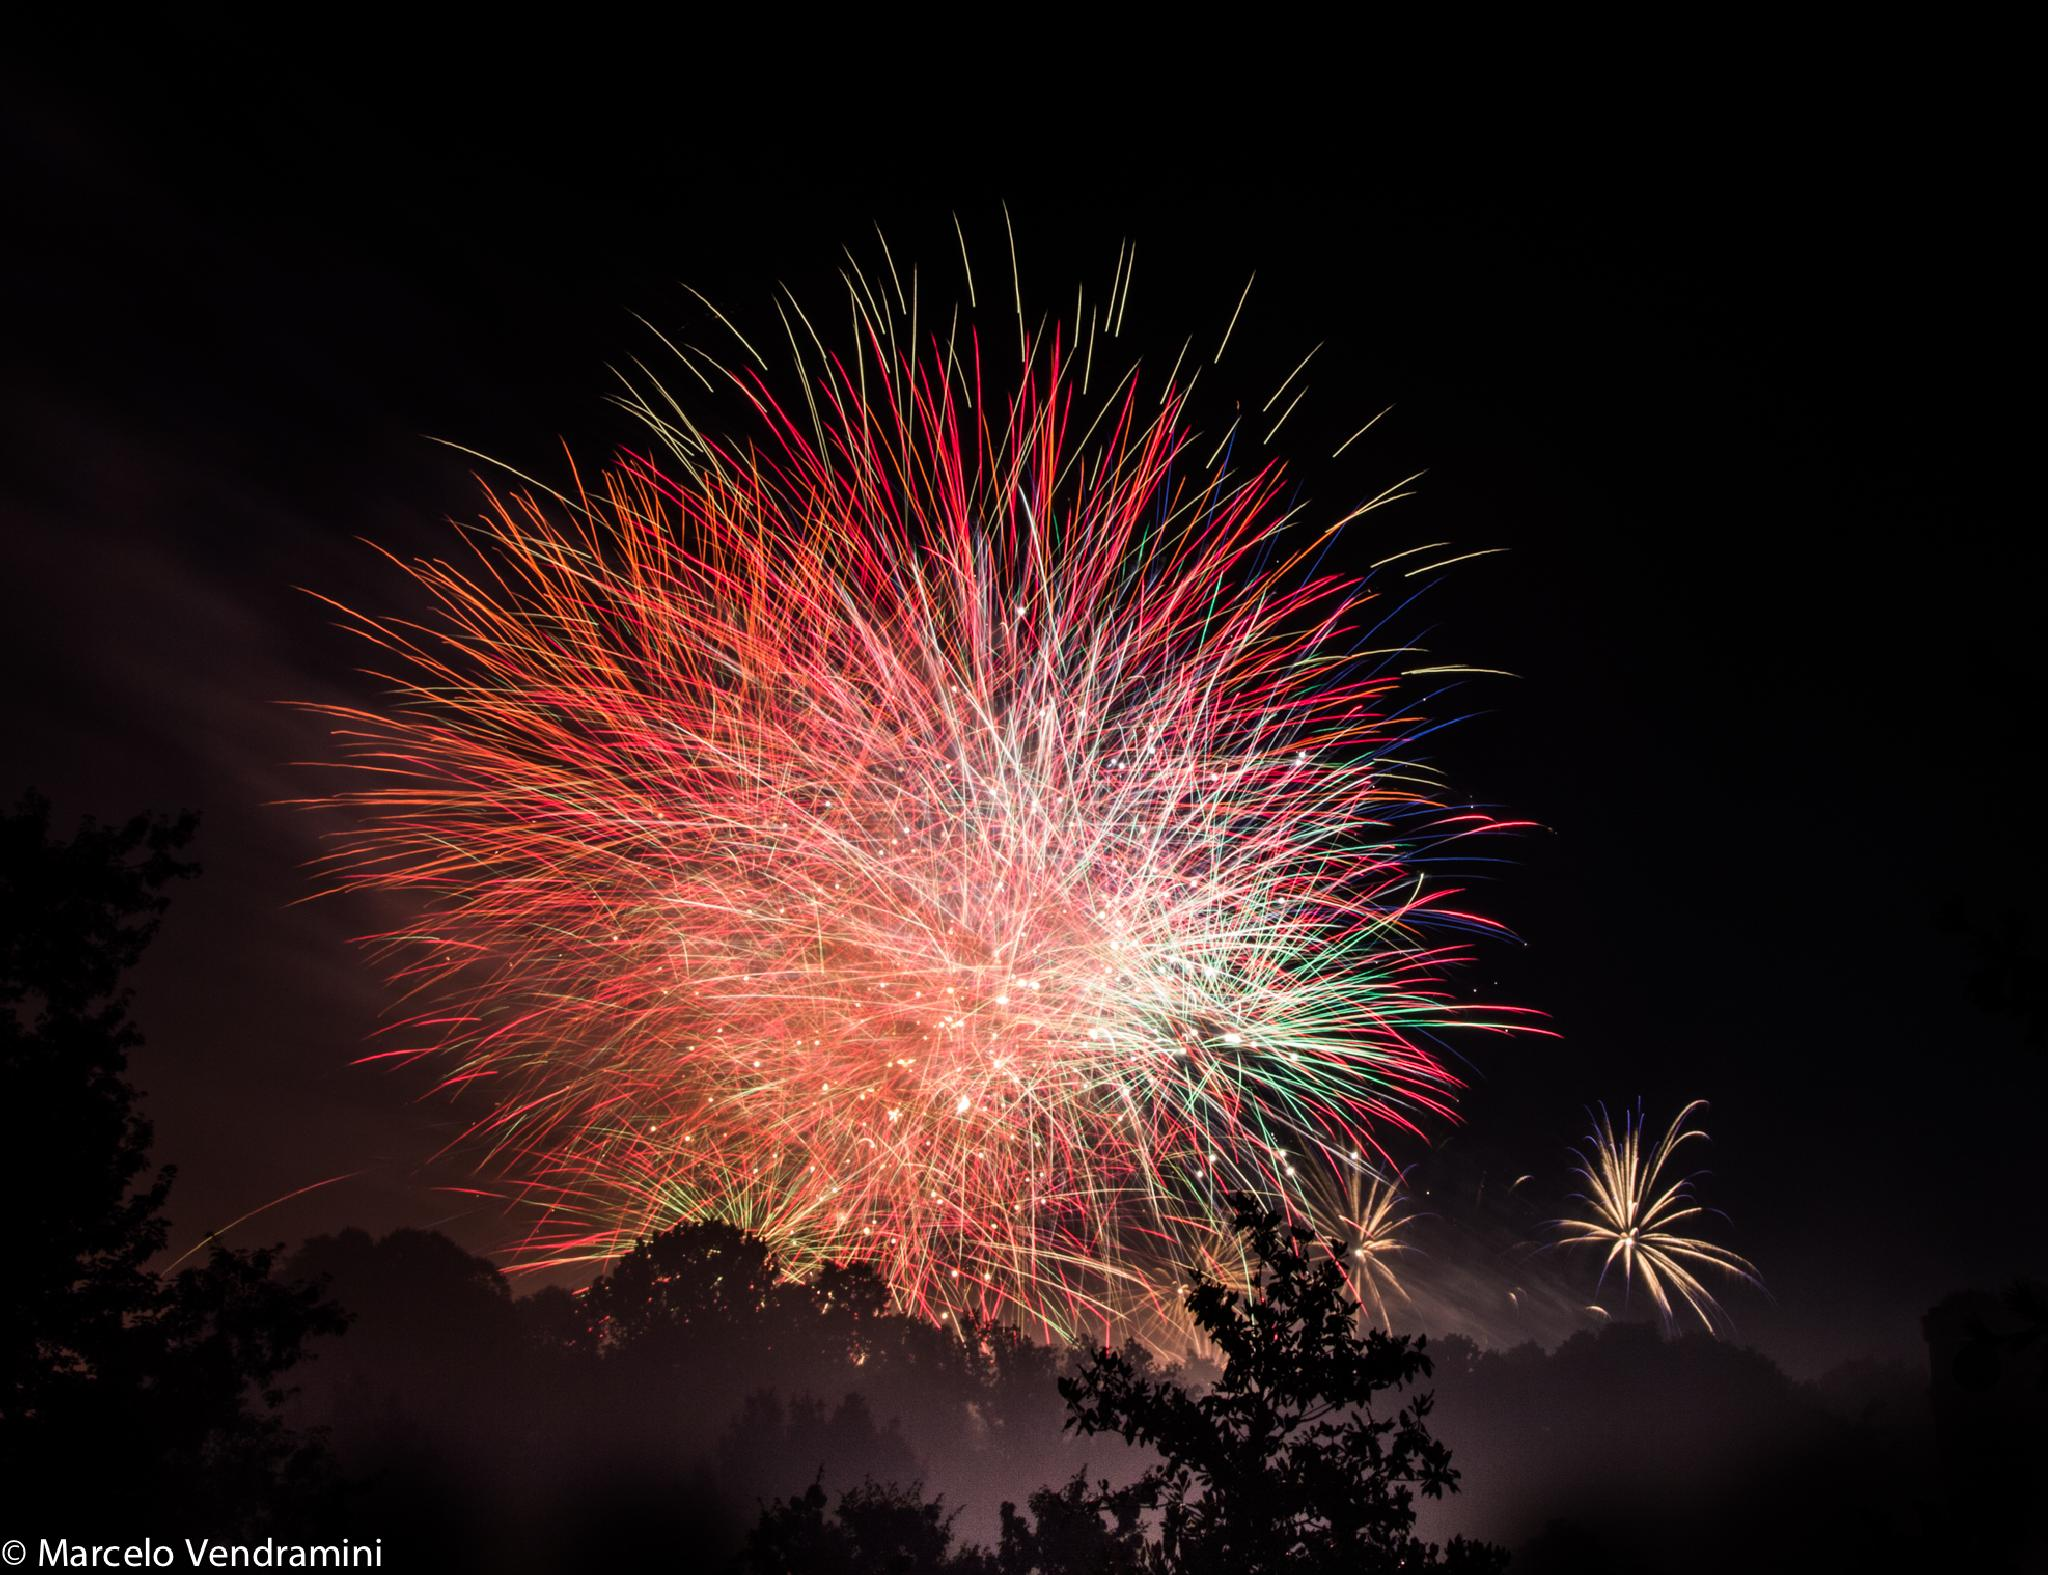 Fireworks San Giovanni in Monza, Italy by Marcelo Vendramini